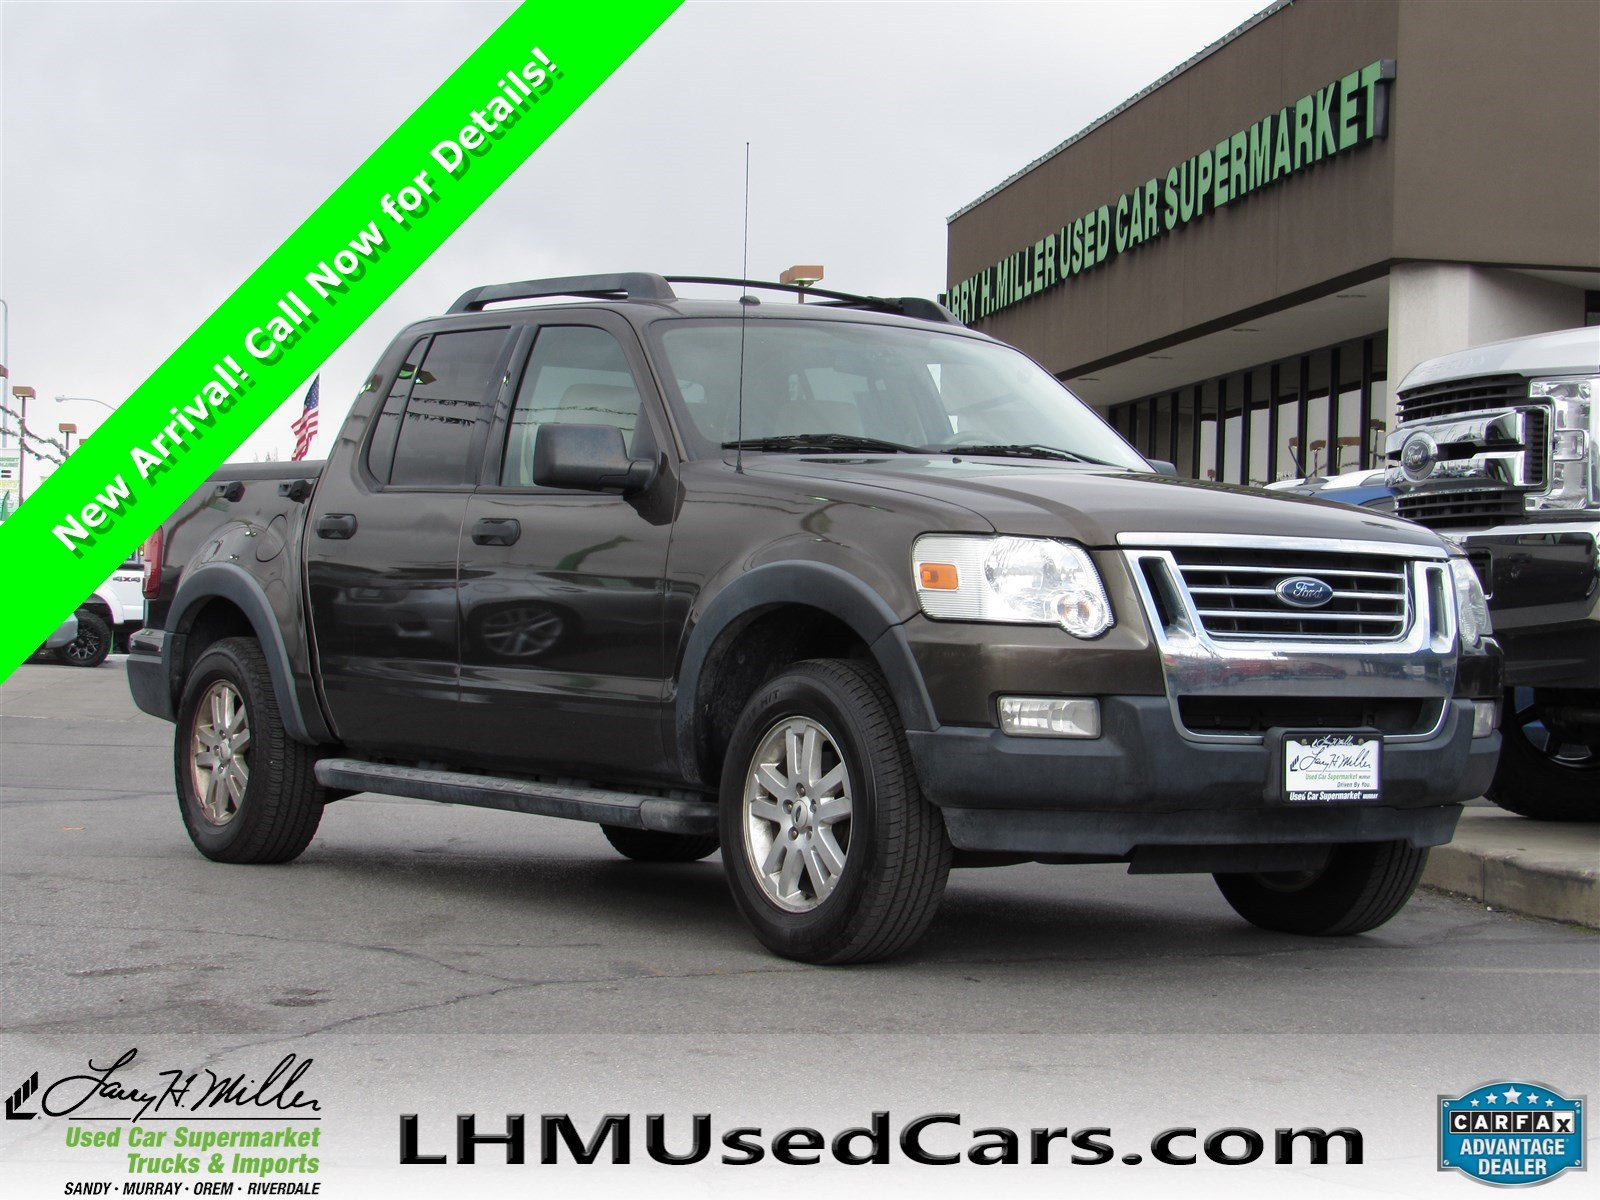 Pre Owned 2008 Ford Explorer Sport Trac Xlt Utility In 0 Dodge Dakota Custom Fit Vehicle Wiring Tow Ready